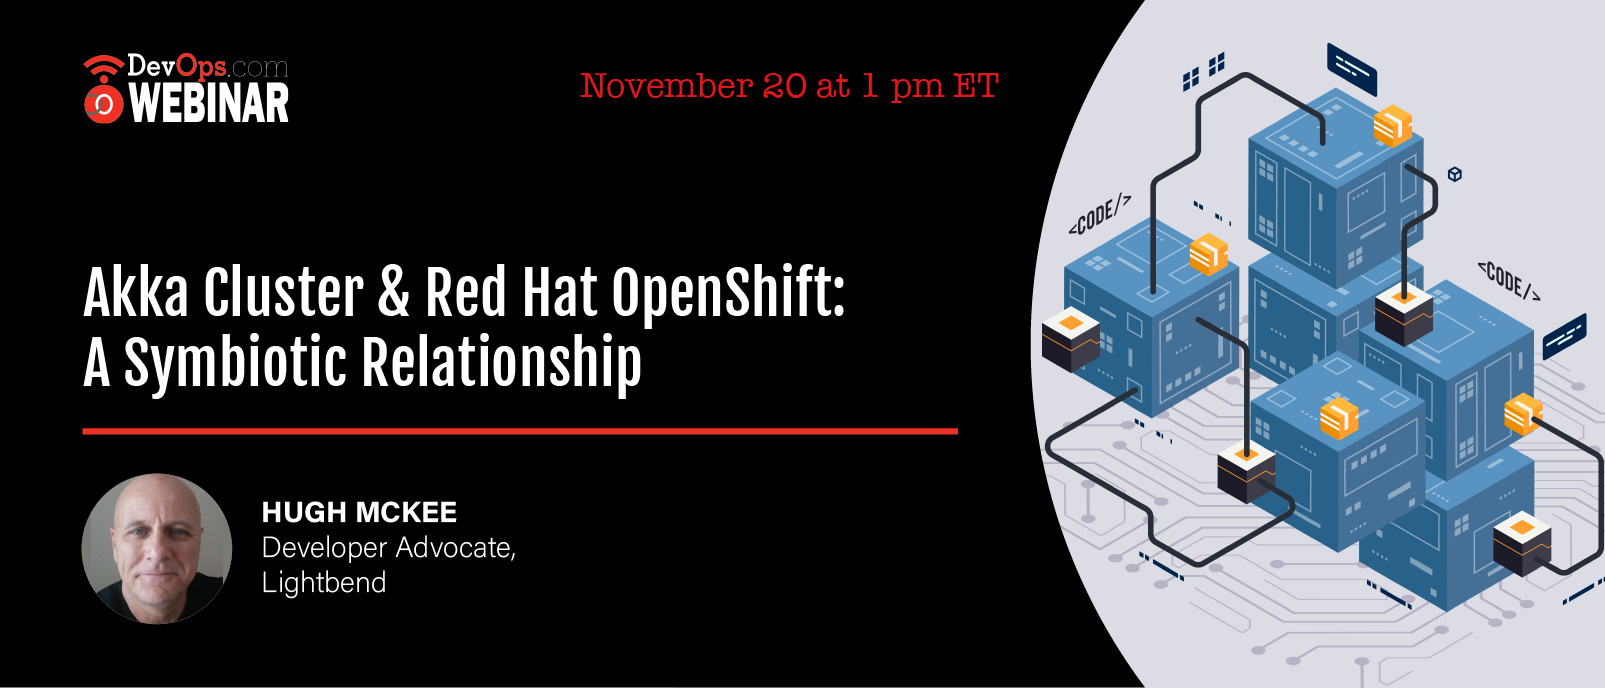 Akka Cluster and Red Hat OpenShift: A Symbiotic Relationship